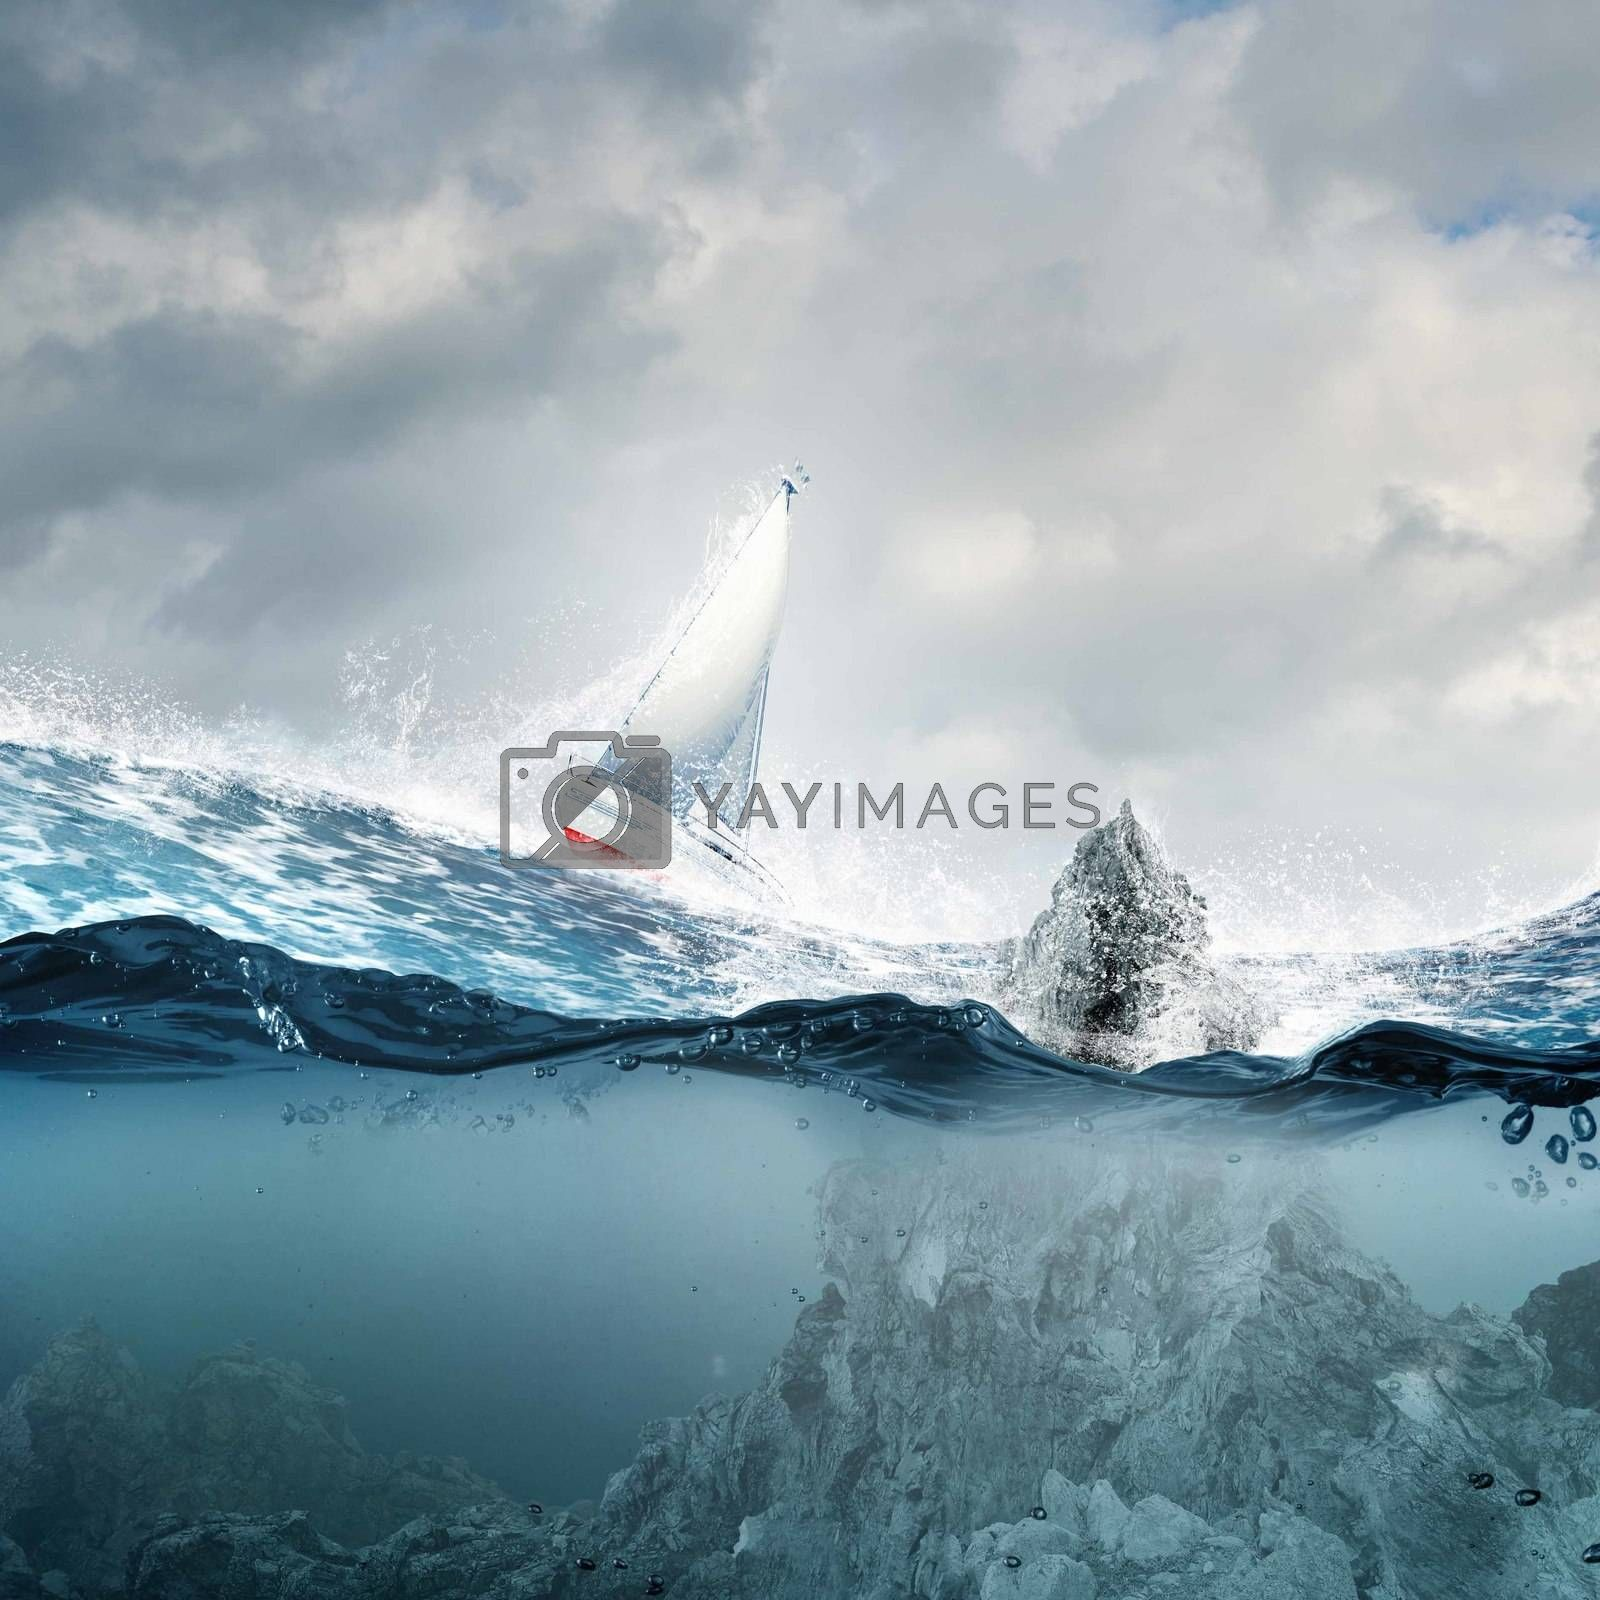 Royalty free image of Yachting sport by sergey_nivens